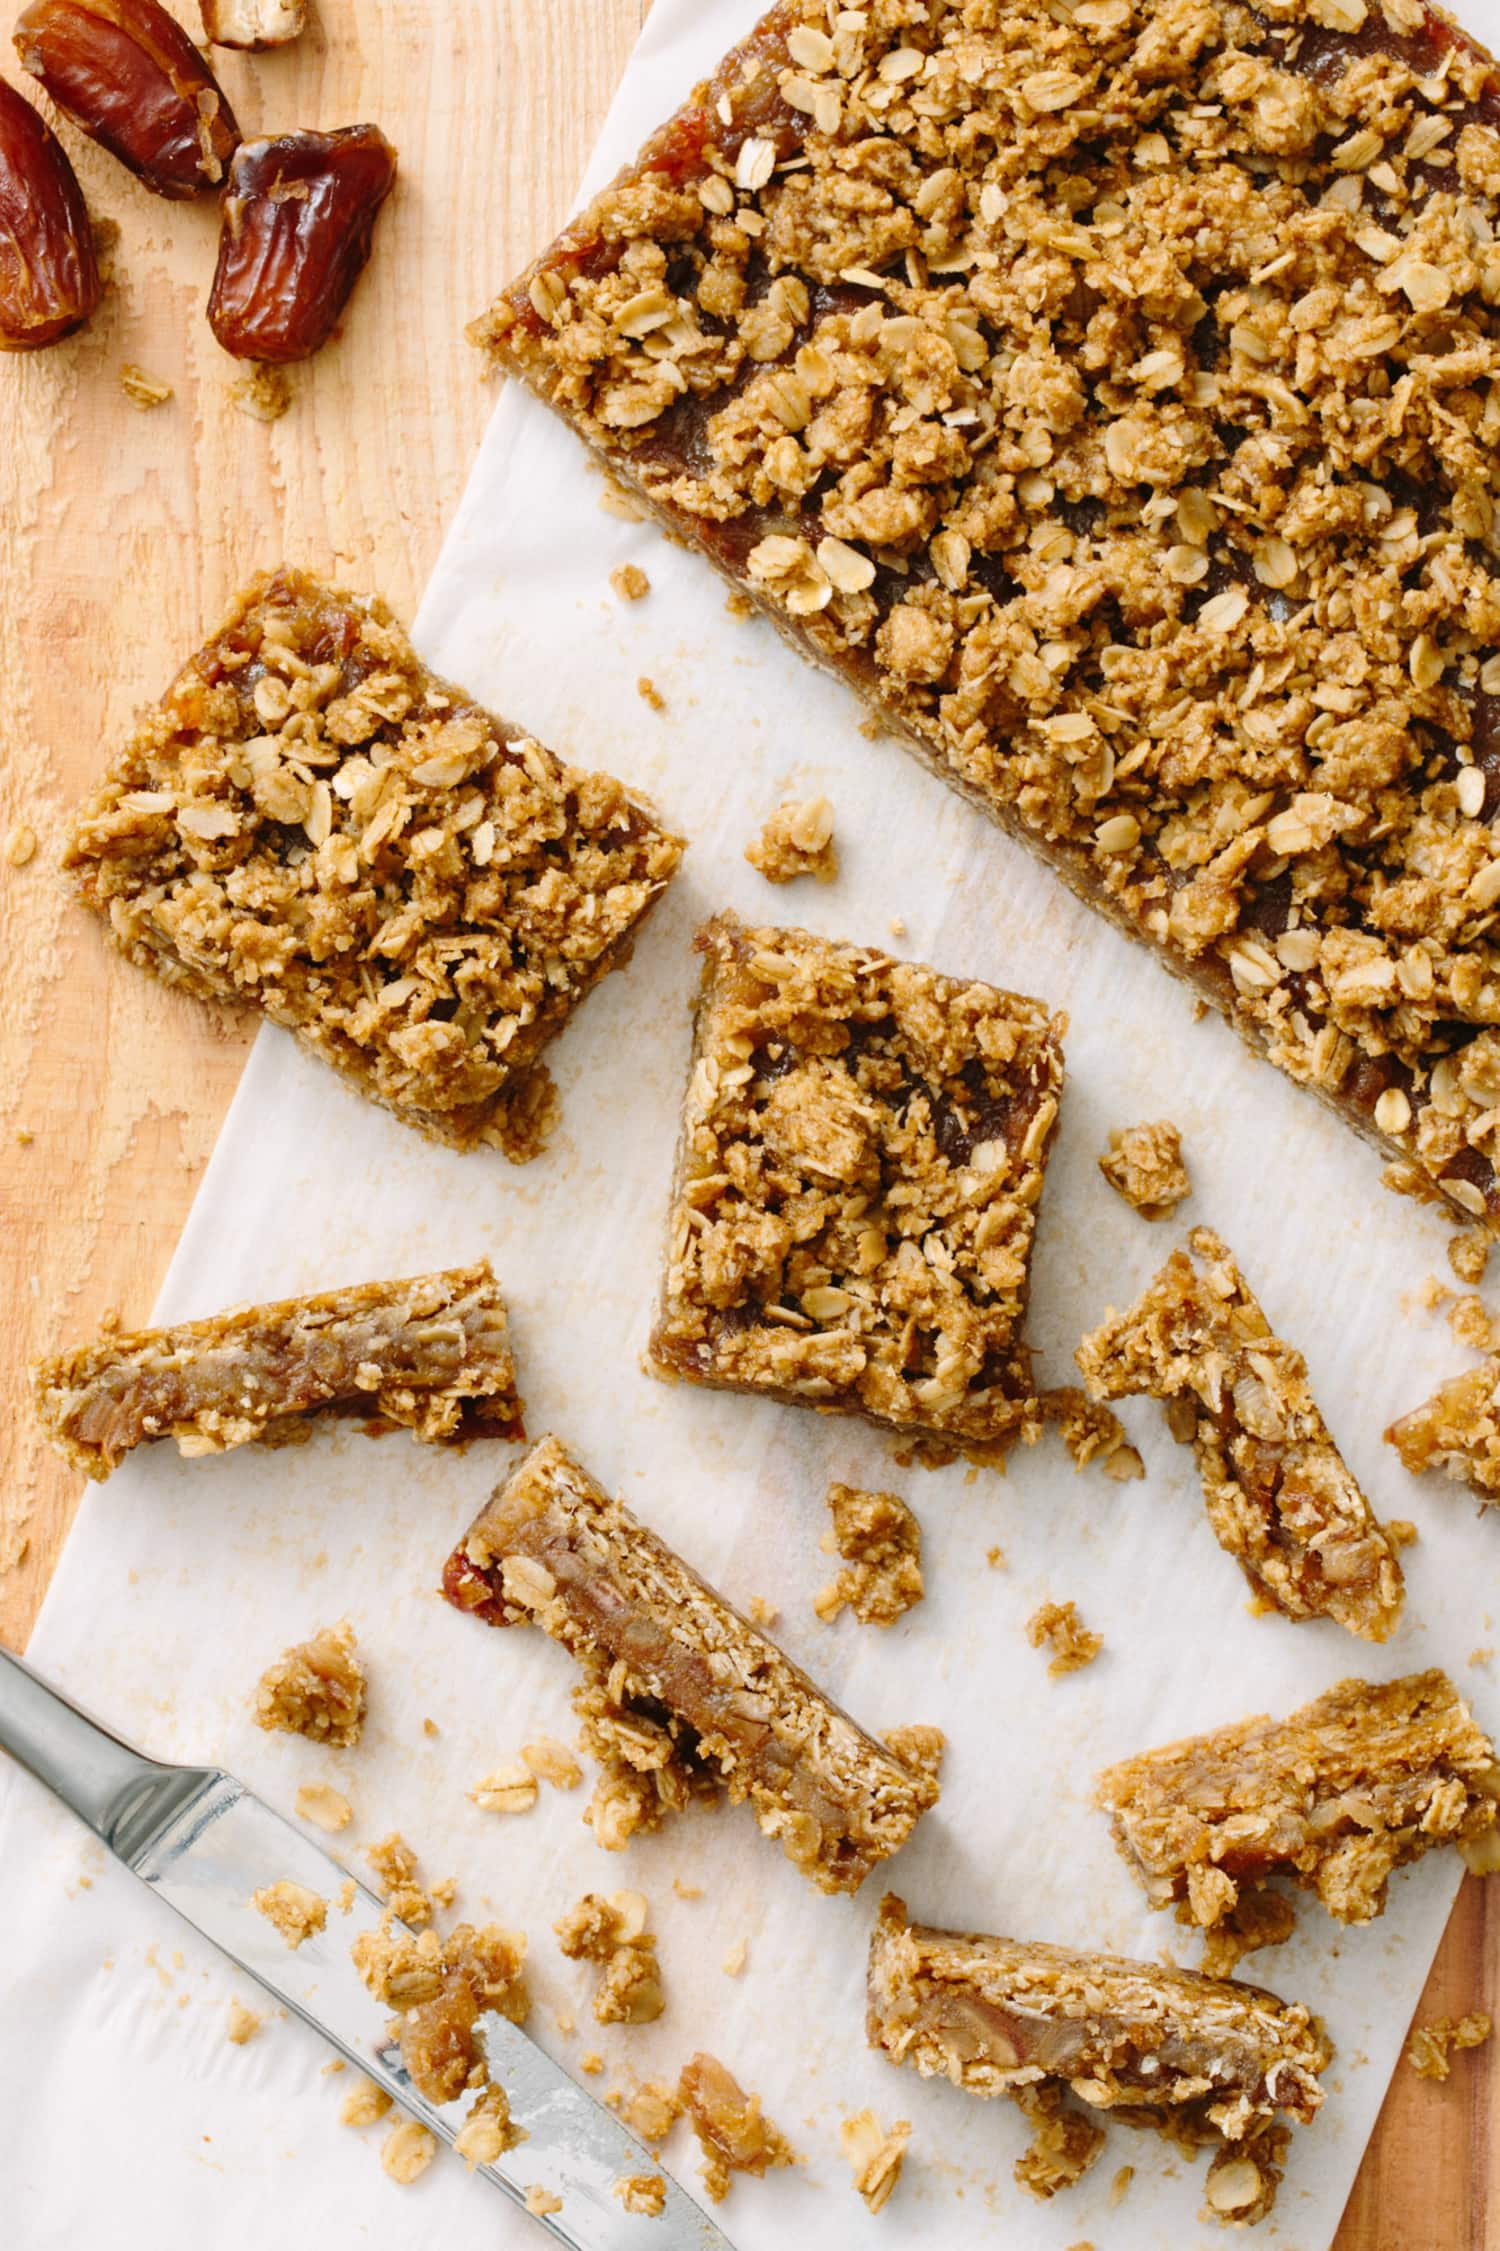 How To Make Old-Fashioned Date Bars